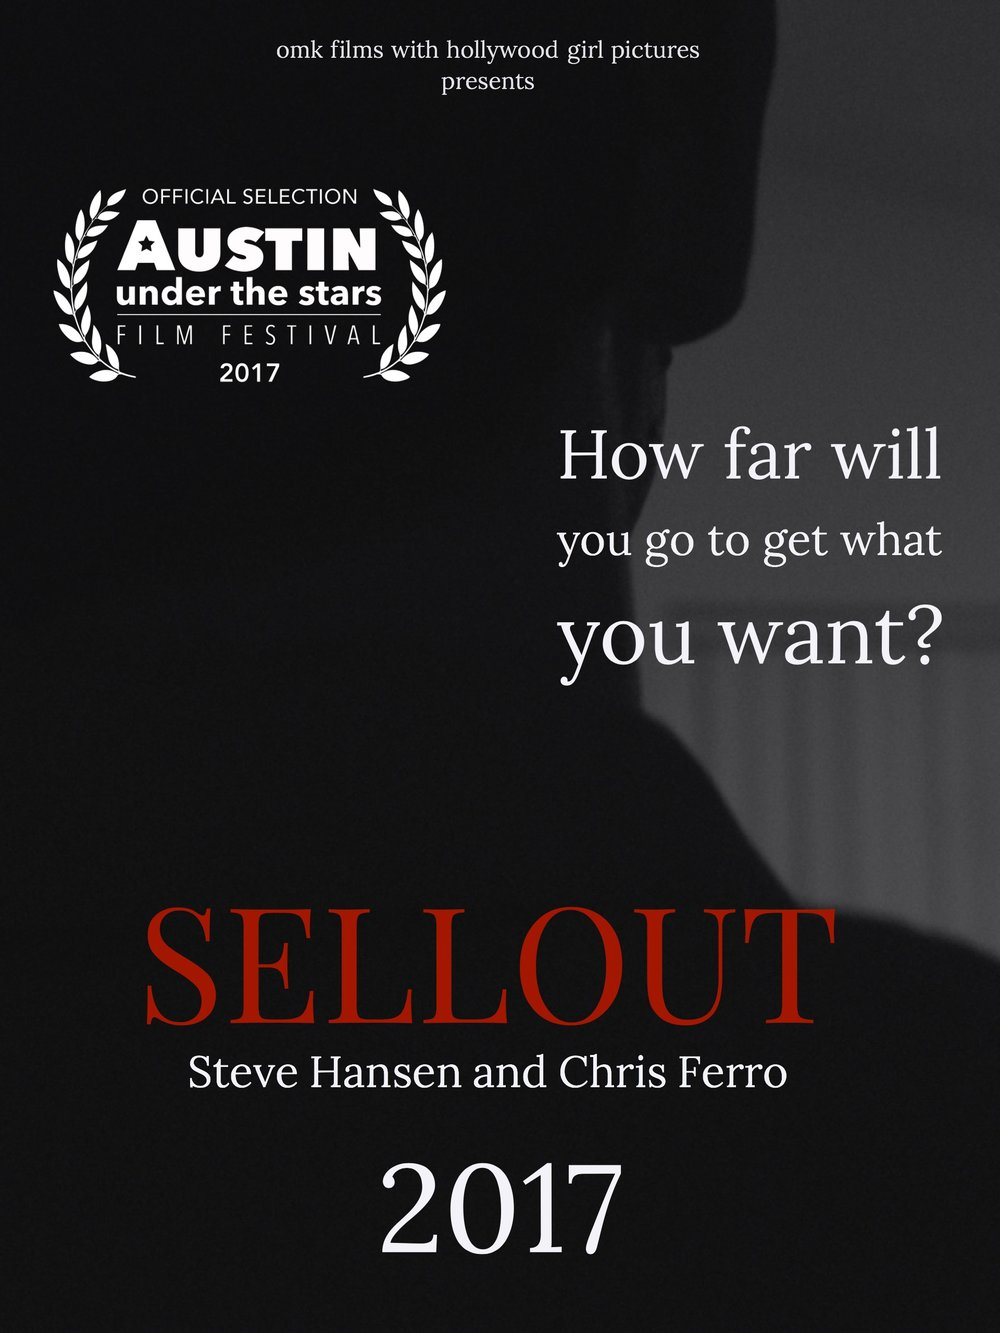 Sellout is an Official Selection at the Austin Under the Stars Film Festival on Oct 21st in Austin TX. It has also been nominated for 'Best Narrative Short', 'Best Actress', and the prestigious 'Wonder Woman' award (Outstanding Female Filmmaker ). - Click below for more information on the festival